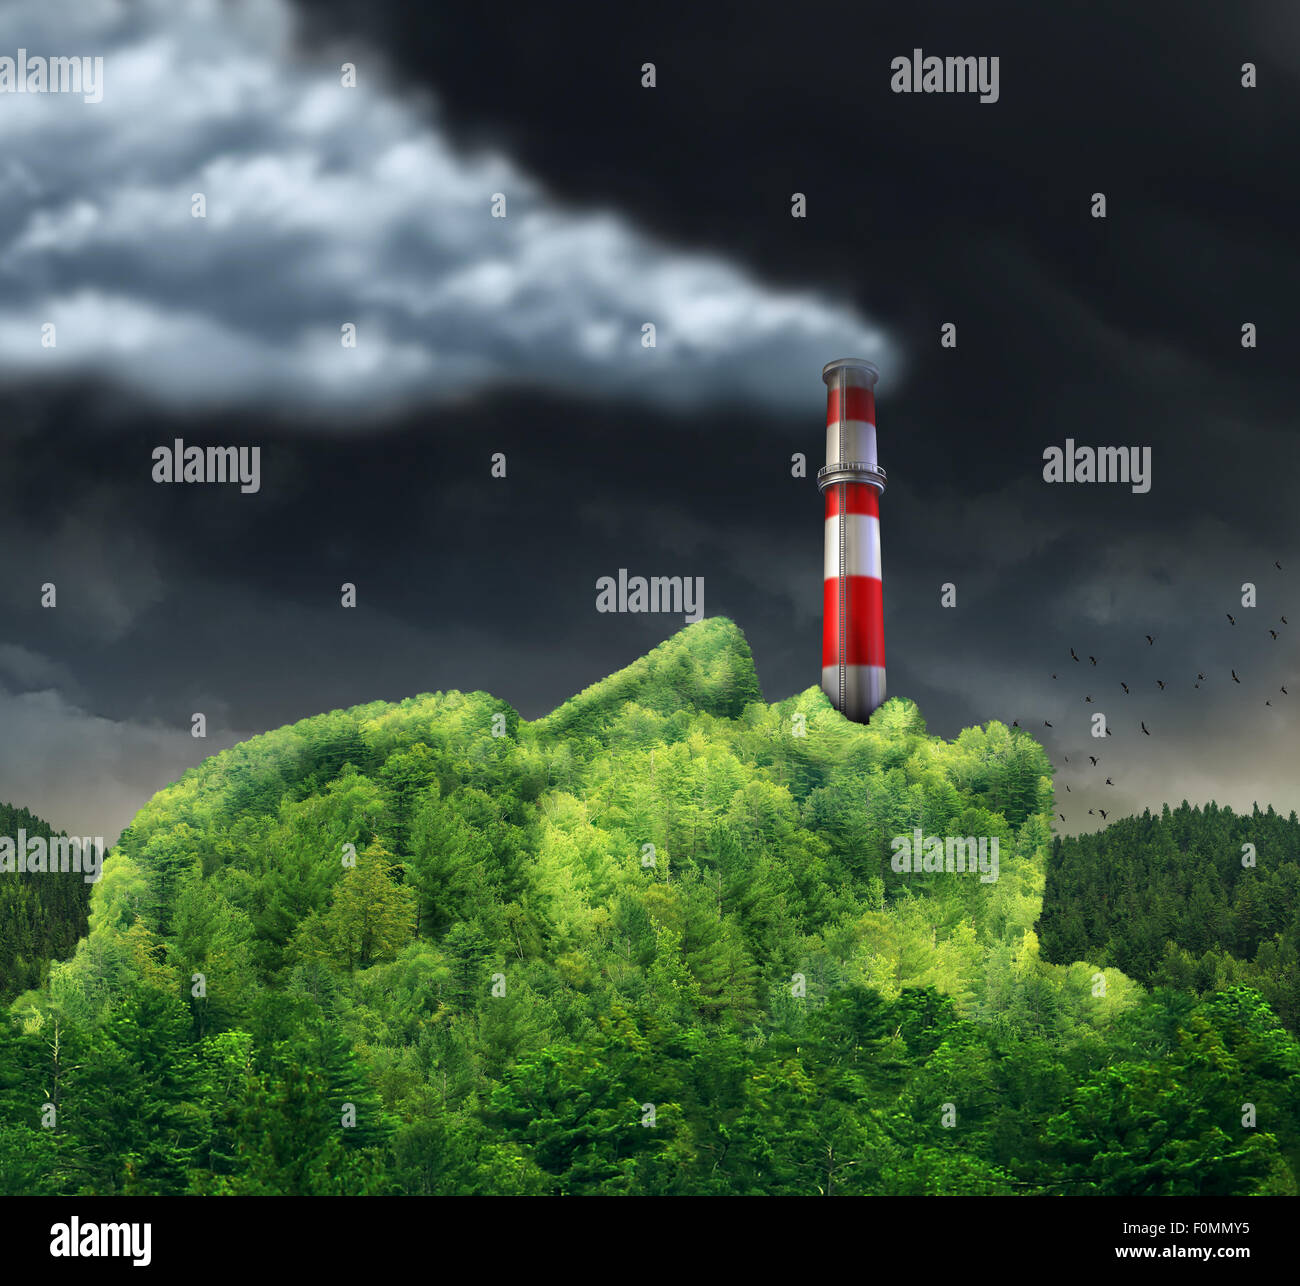 Pollution concept and environment change causing global warming as a surreal environmental idea with a green mountain - Stock Image